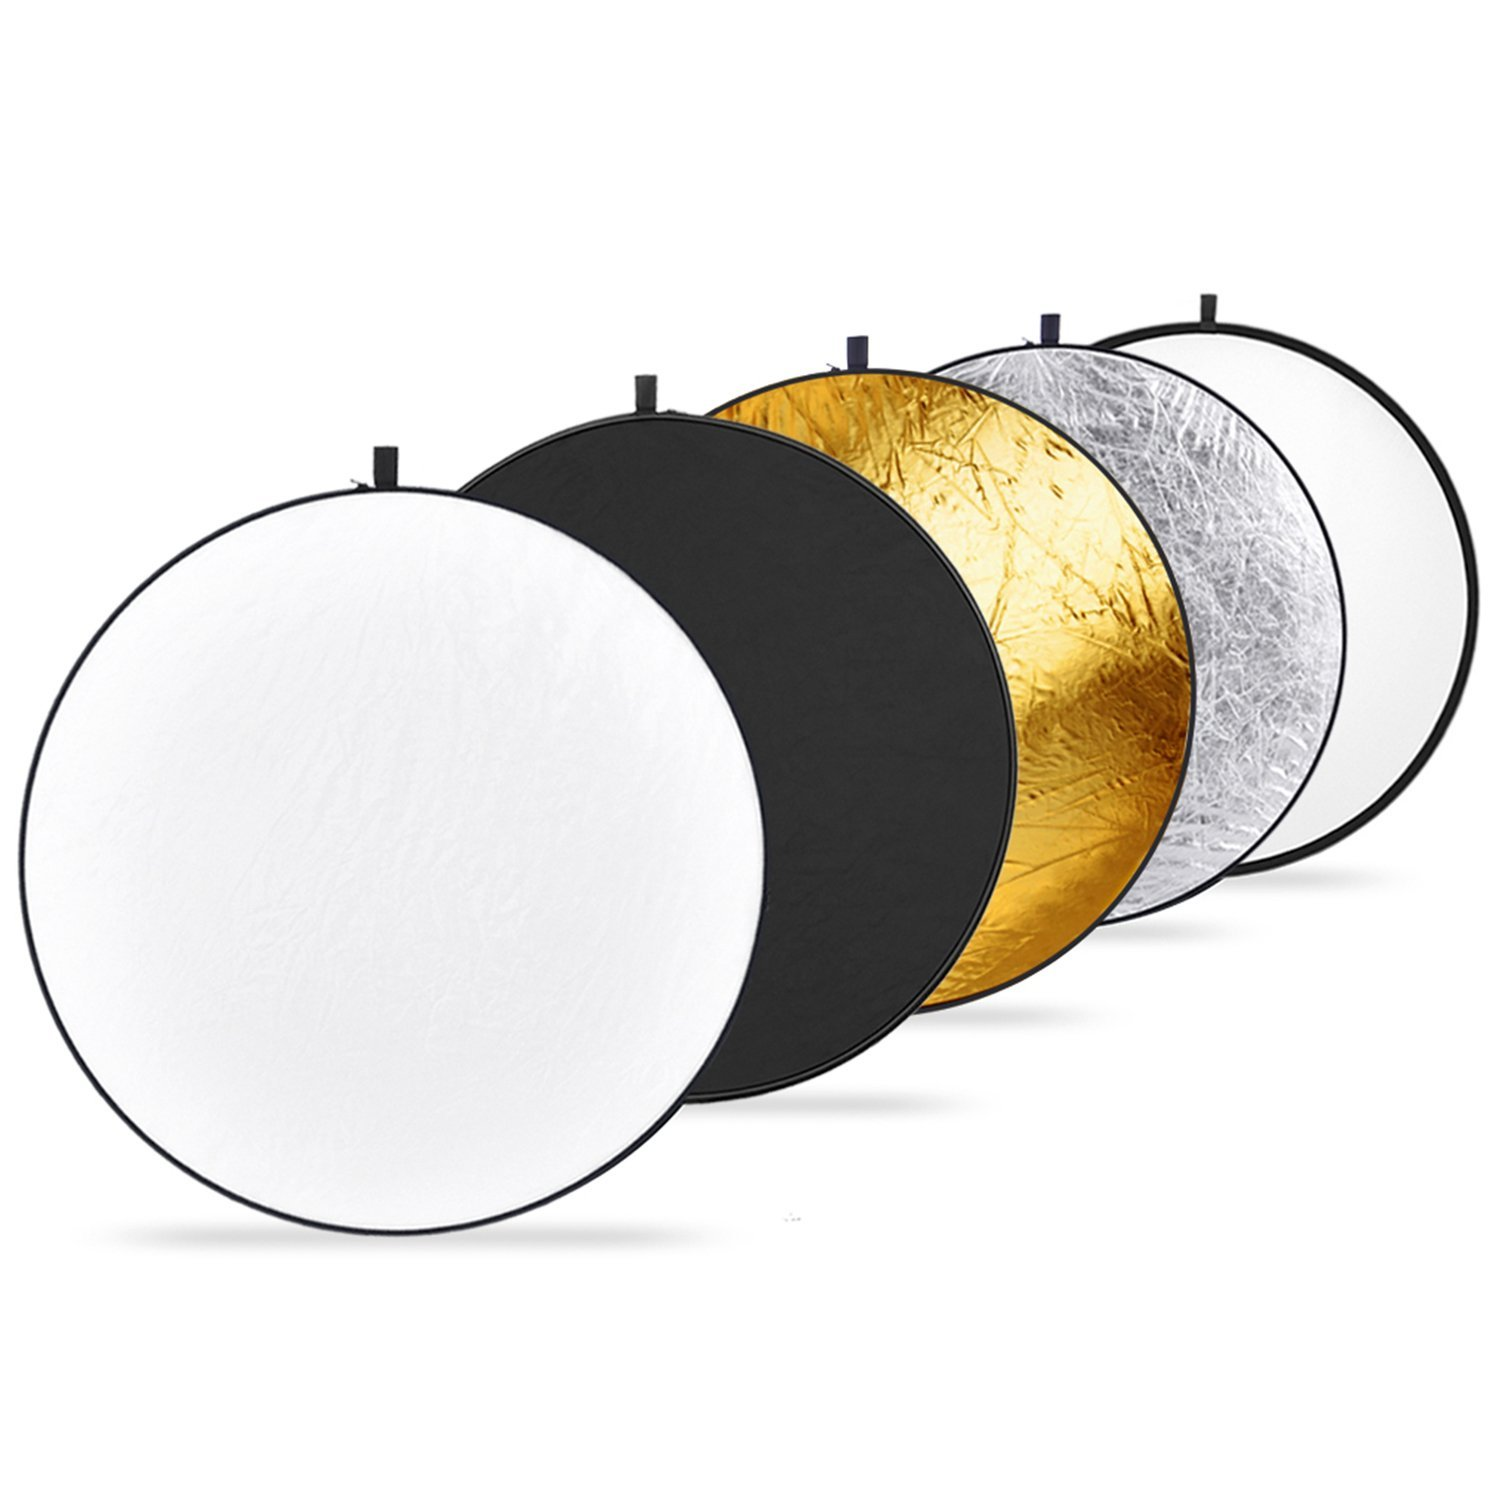 Neewer Portable 5 in 1 60x60cm/22'x22' Translucent, Silver, Gold, White, and Black Collapsible Round Multi Disc Light Reflector for Studio or any Photography Situation 10000675@@1